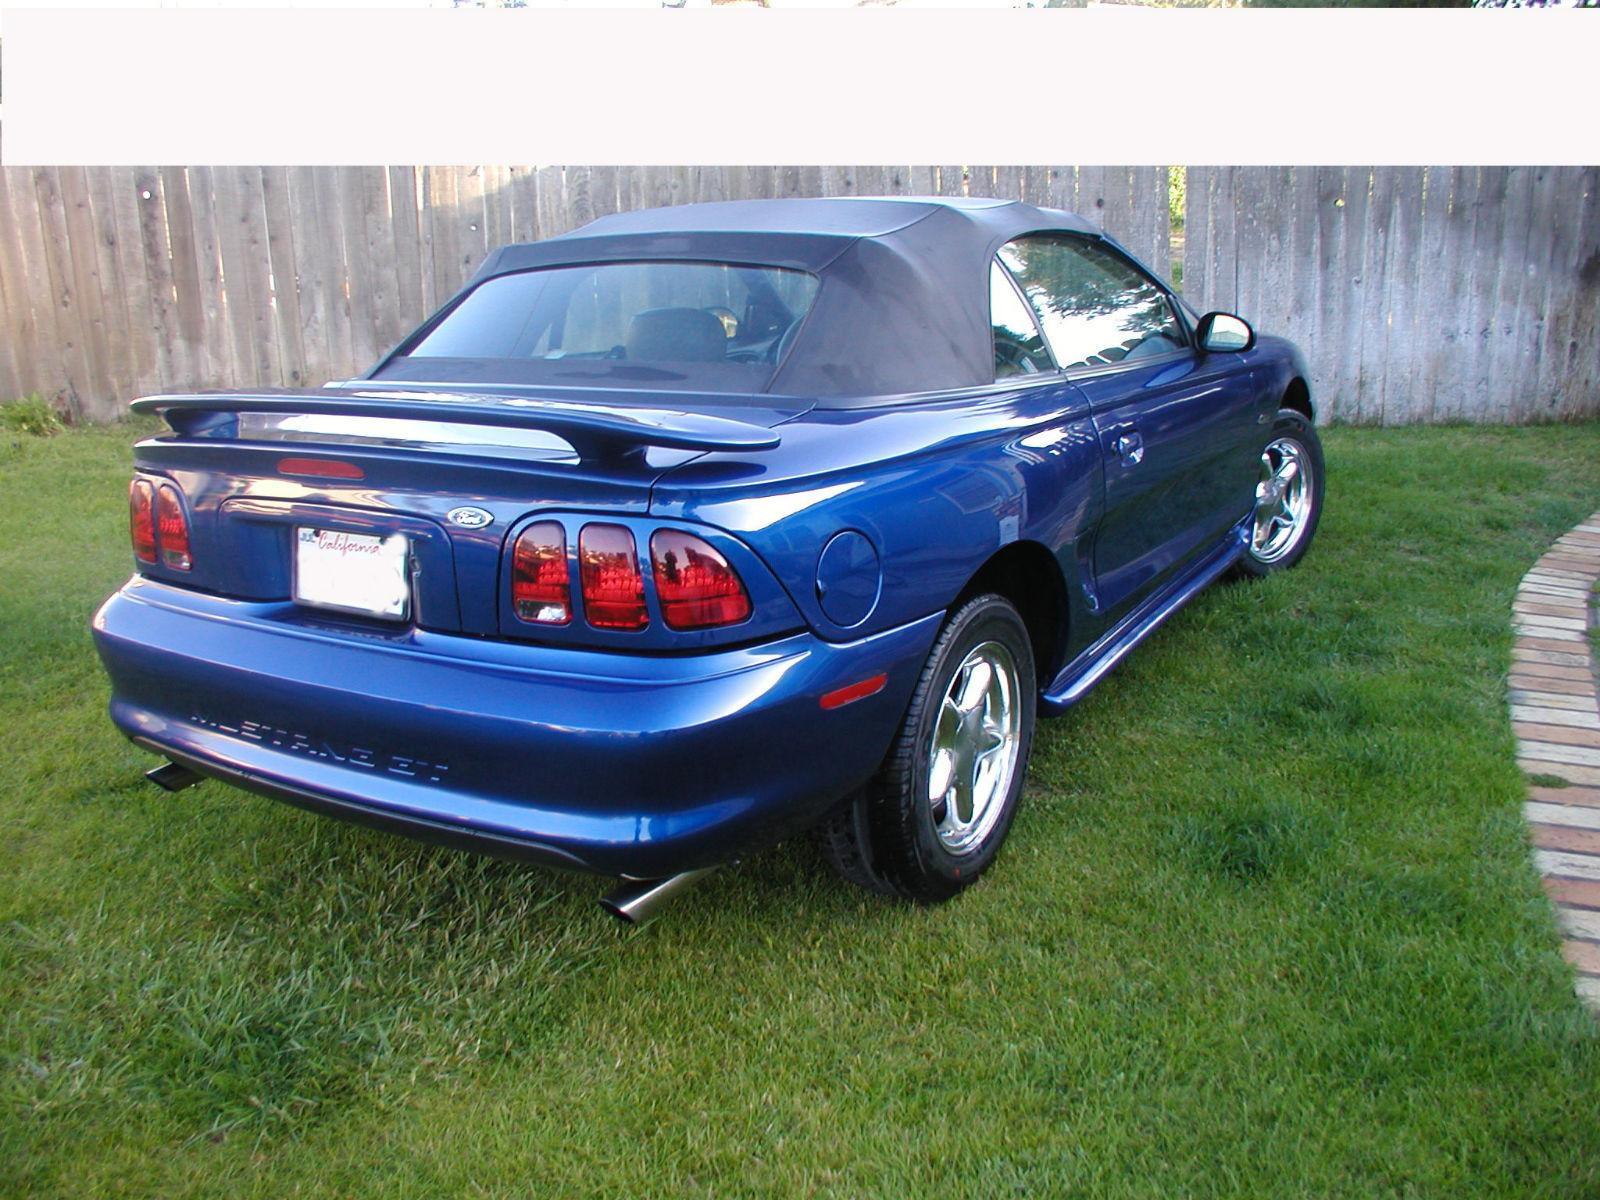 BeauFlex 1996 Ford MustangGT Convertible 2D Specs, Photos